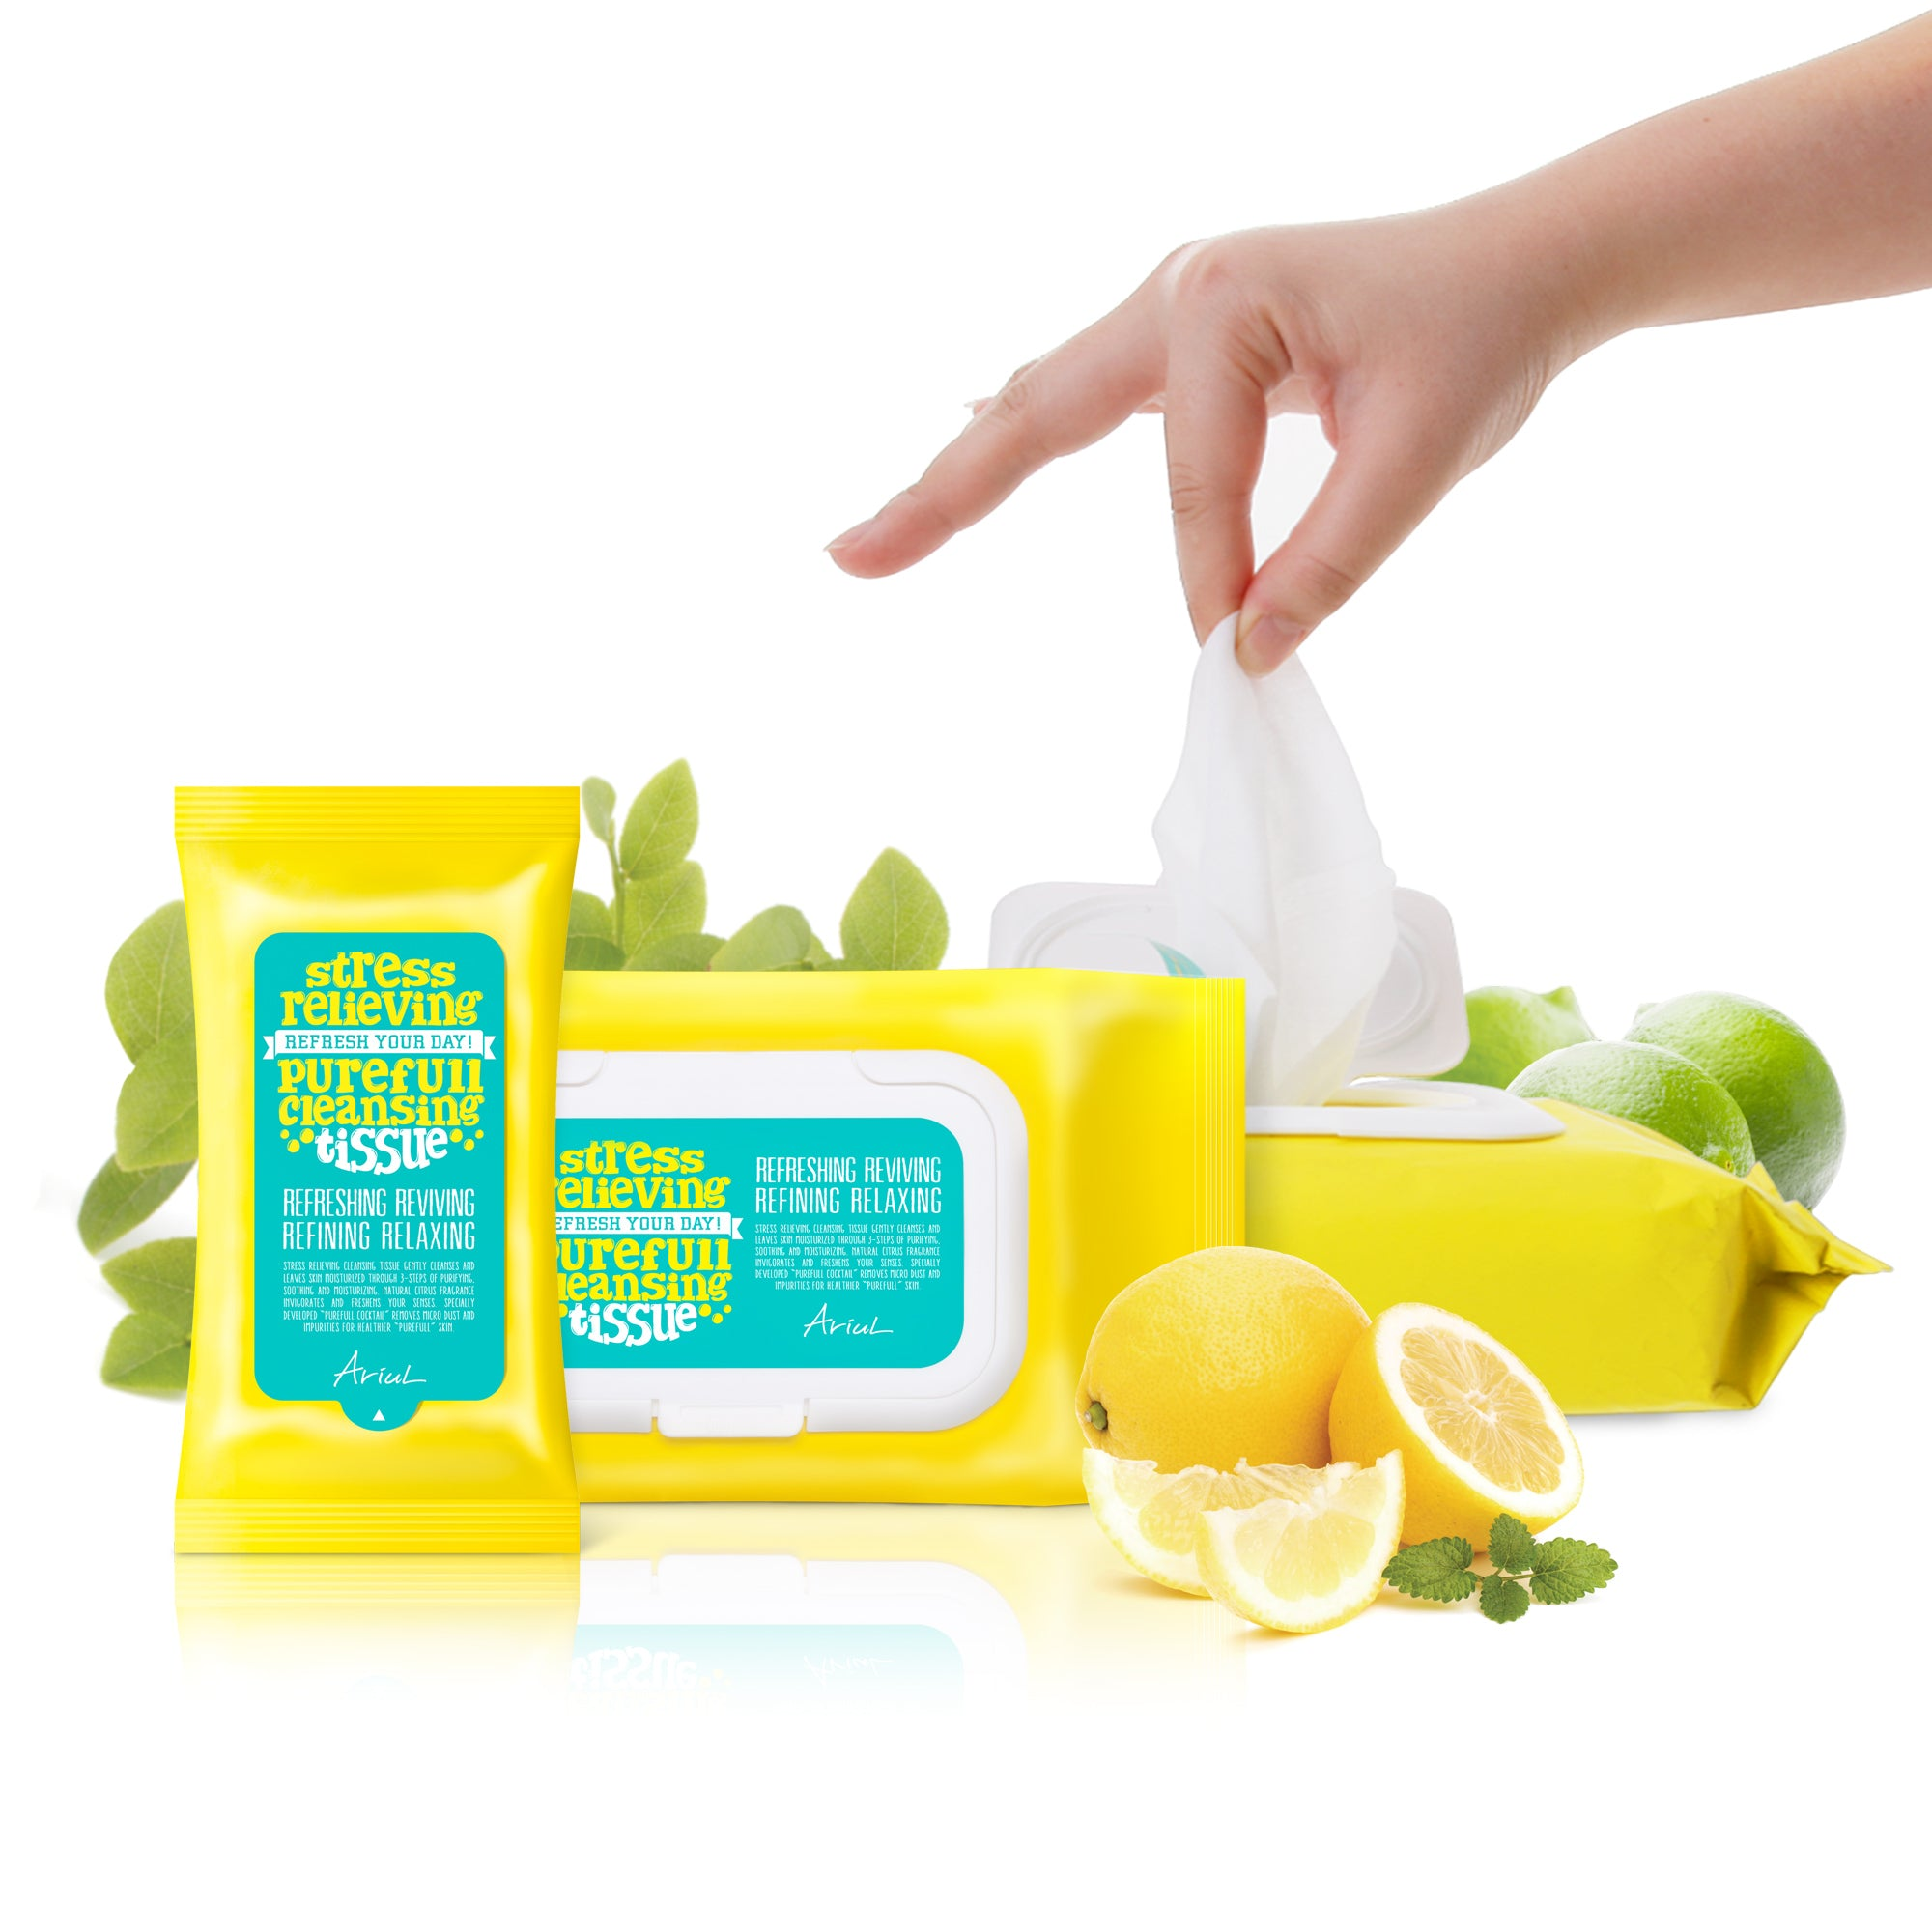 Ariul Stress Relieving Purefull Cleansing Tissue